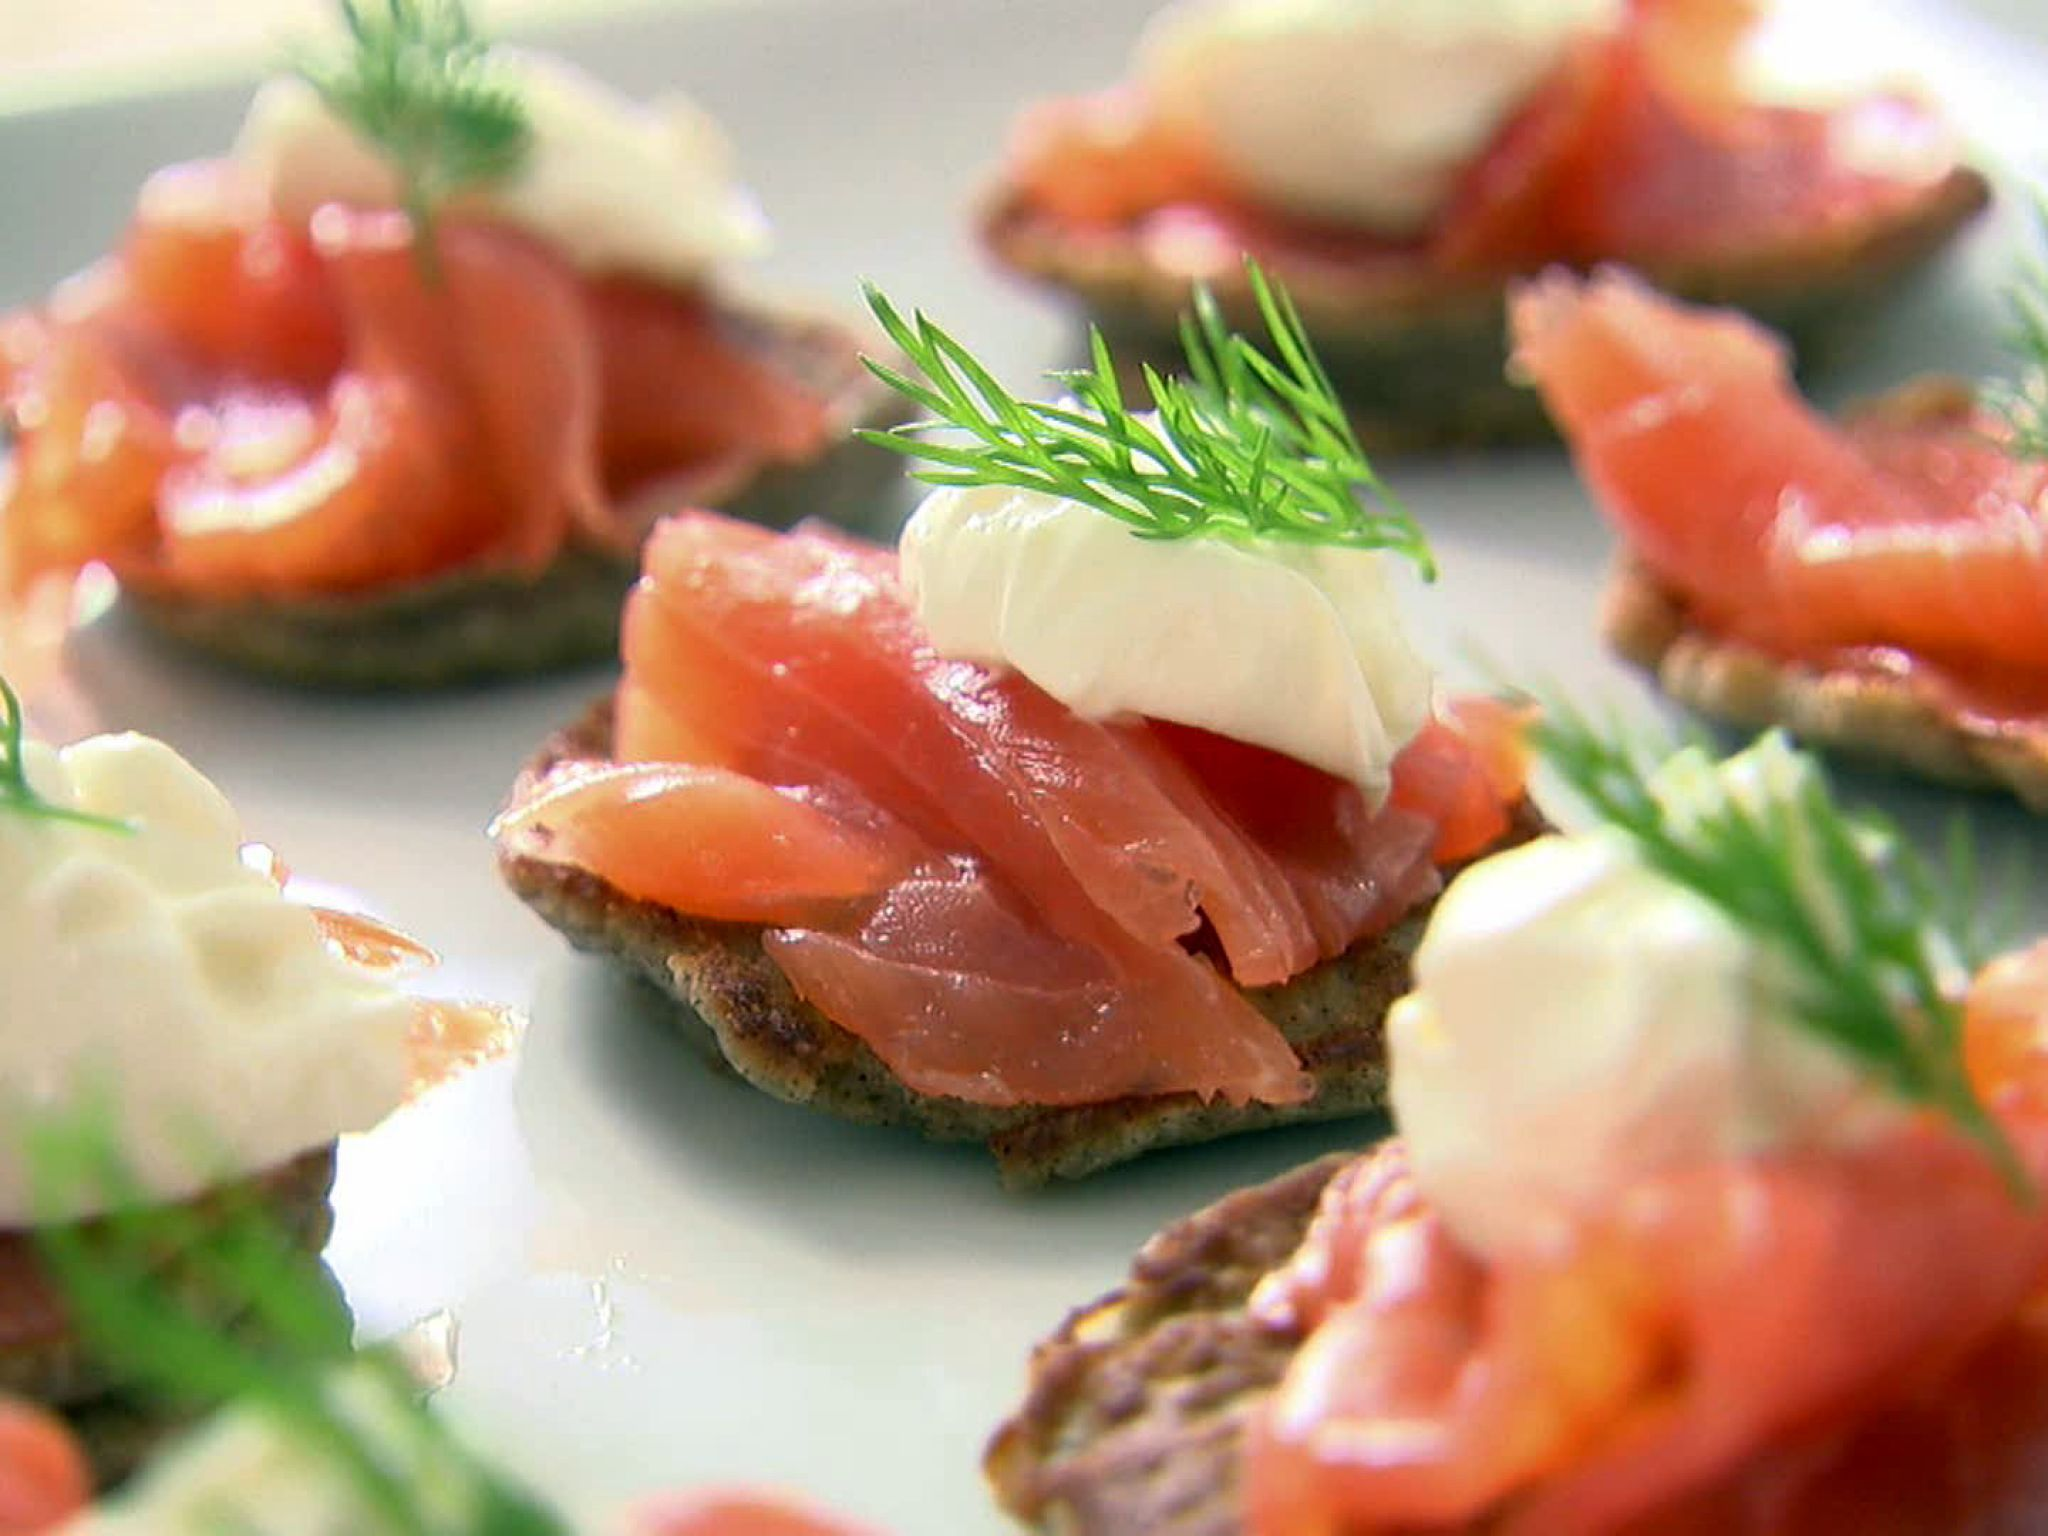 Blinis with creme fraiche and smoked salmon recipe ina garten blinis with creme fraiche and smoked salmon recipe ina garten creme fraiche and salmon recipes forumfinder Image collections